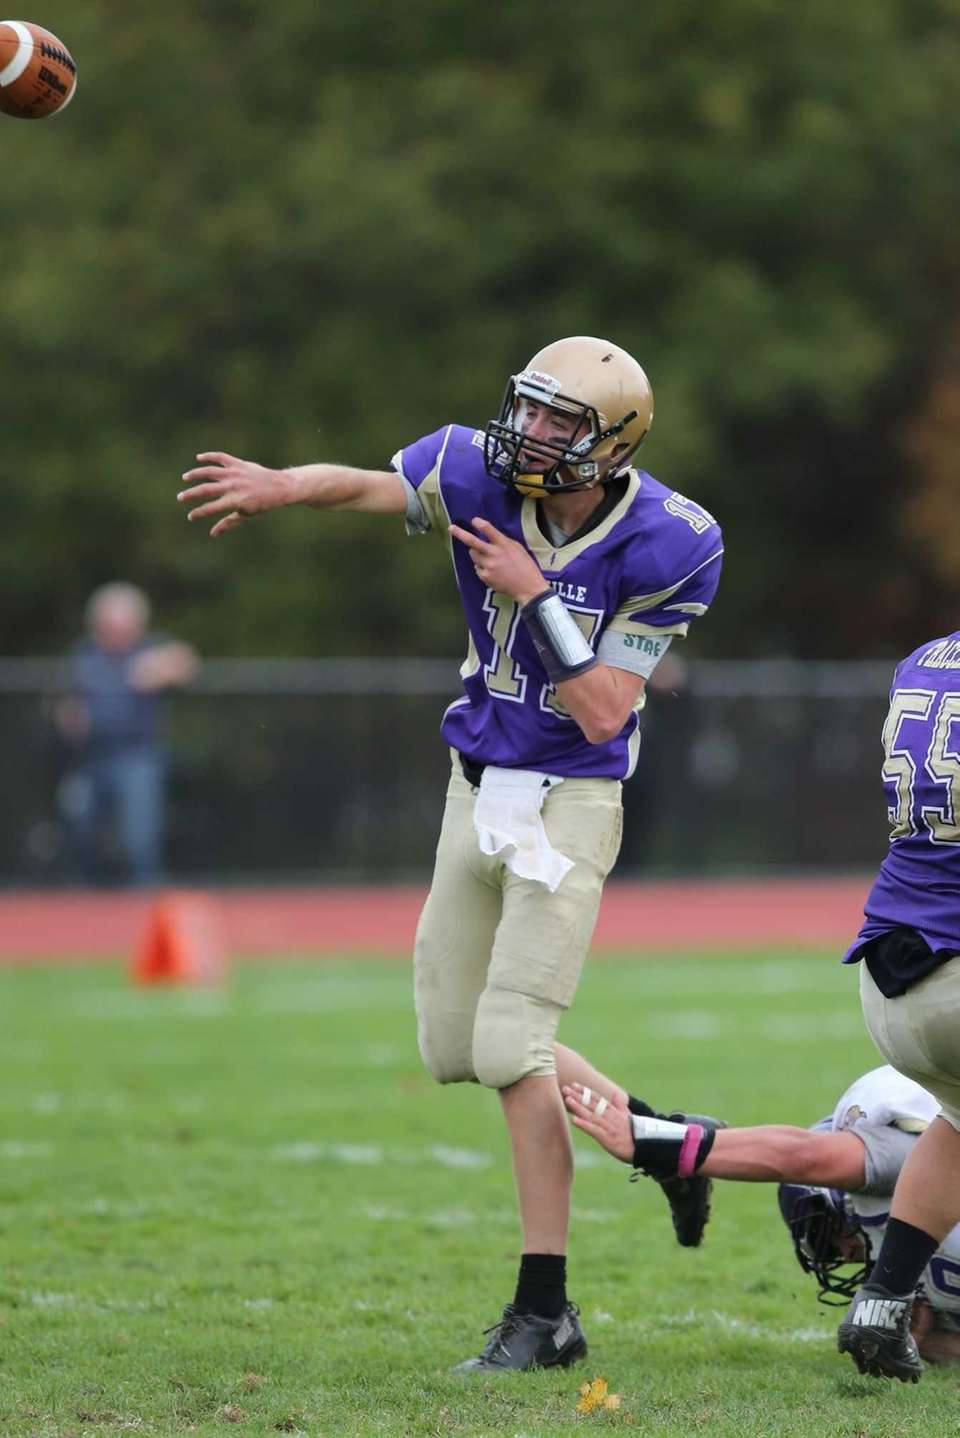 Sayville quarterback Jack Coan completes a pass during